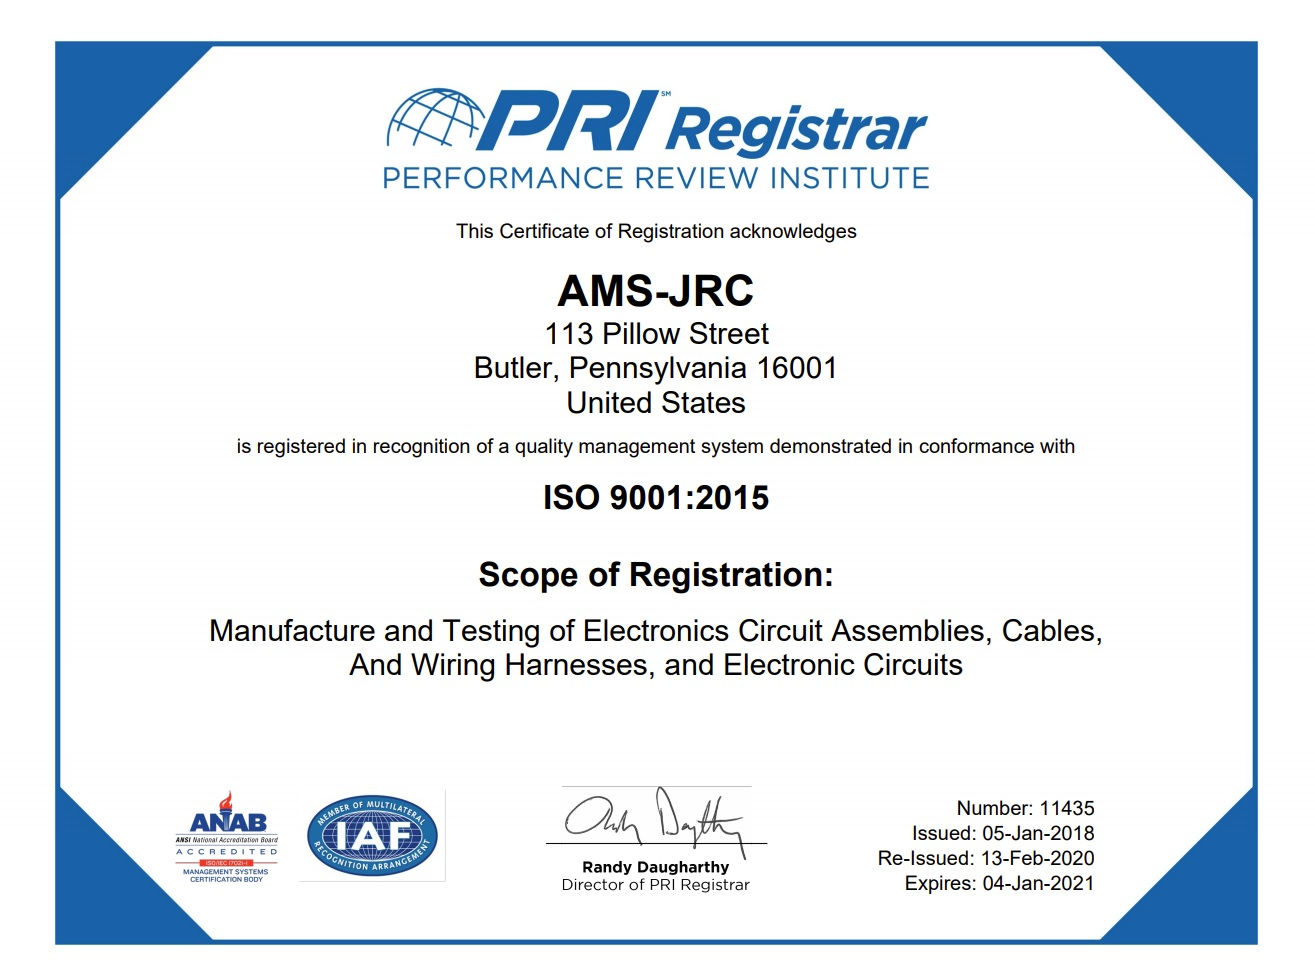 ISO CERTIFICATION ISO 9001:2015